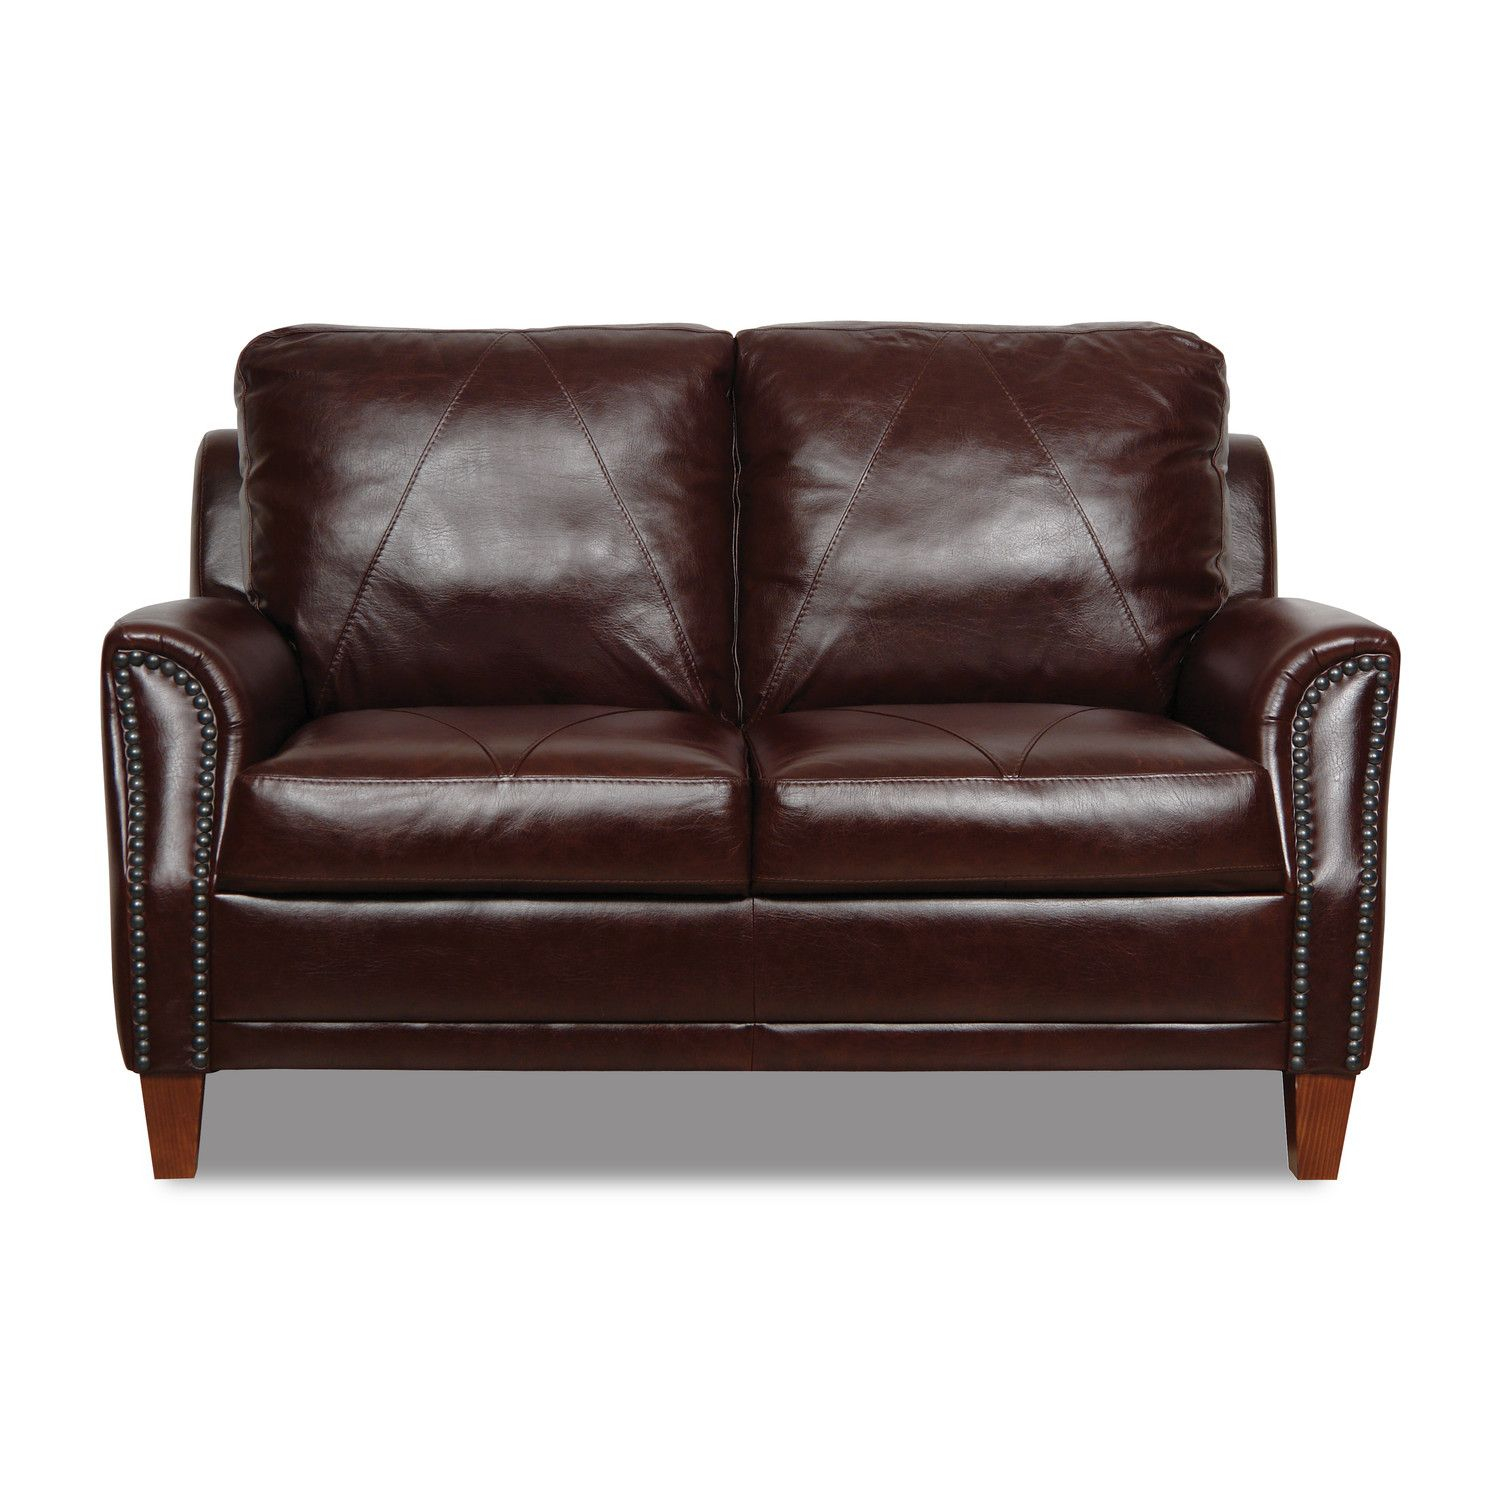 Luke Leather Austin Leather Modular Loveseat A Den intended for sizing 1500 X 1500